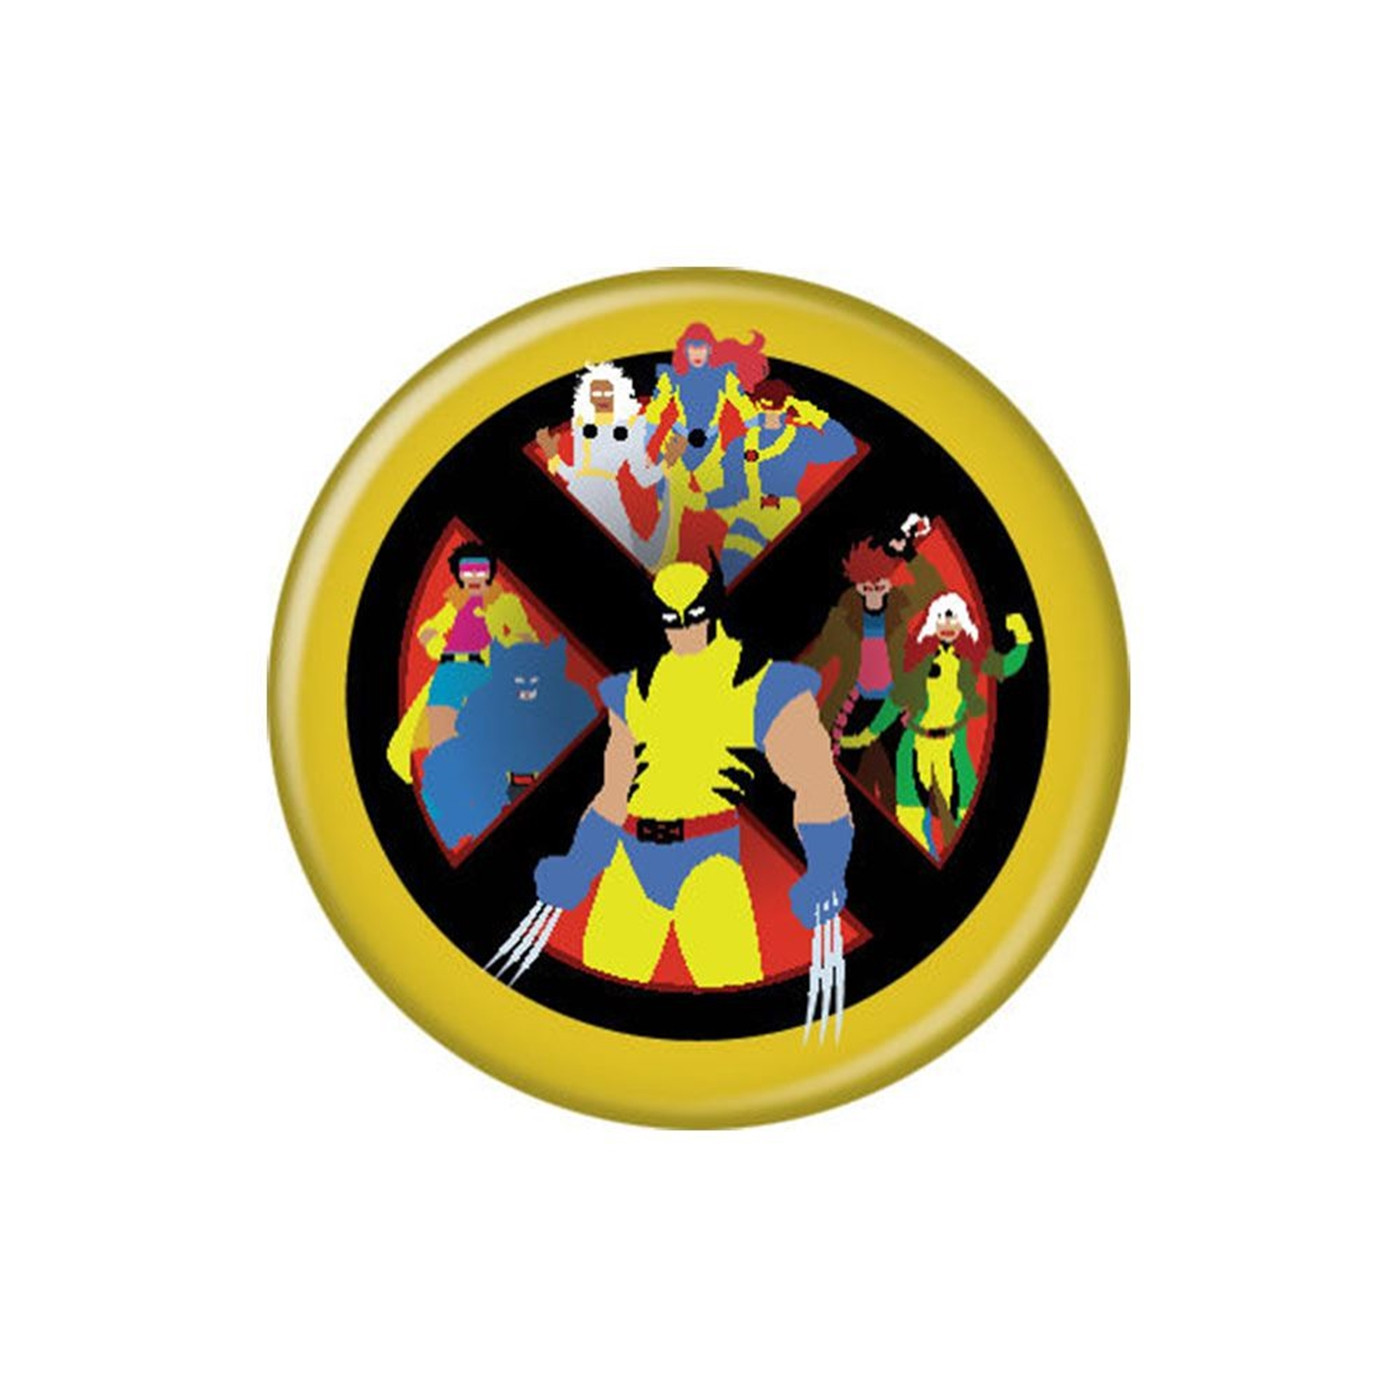 X-Men Cartoon Cast Button